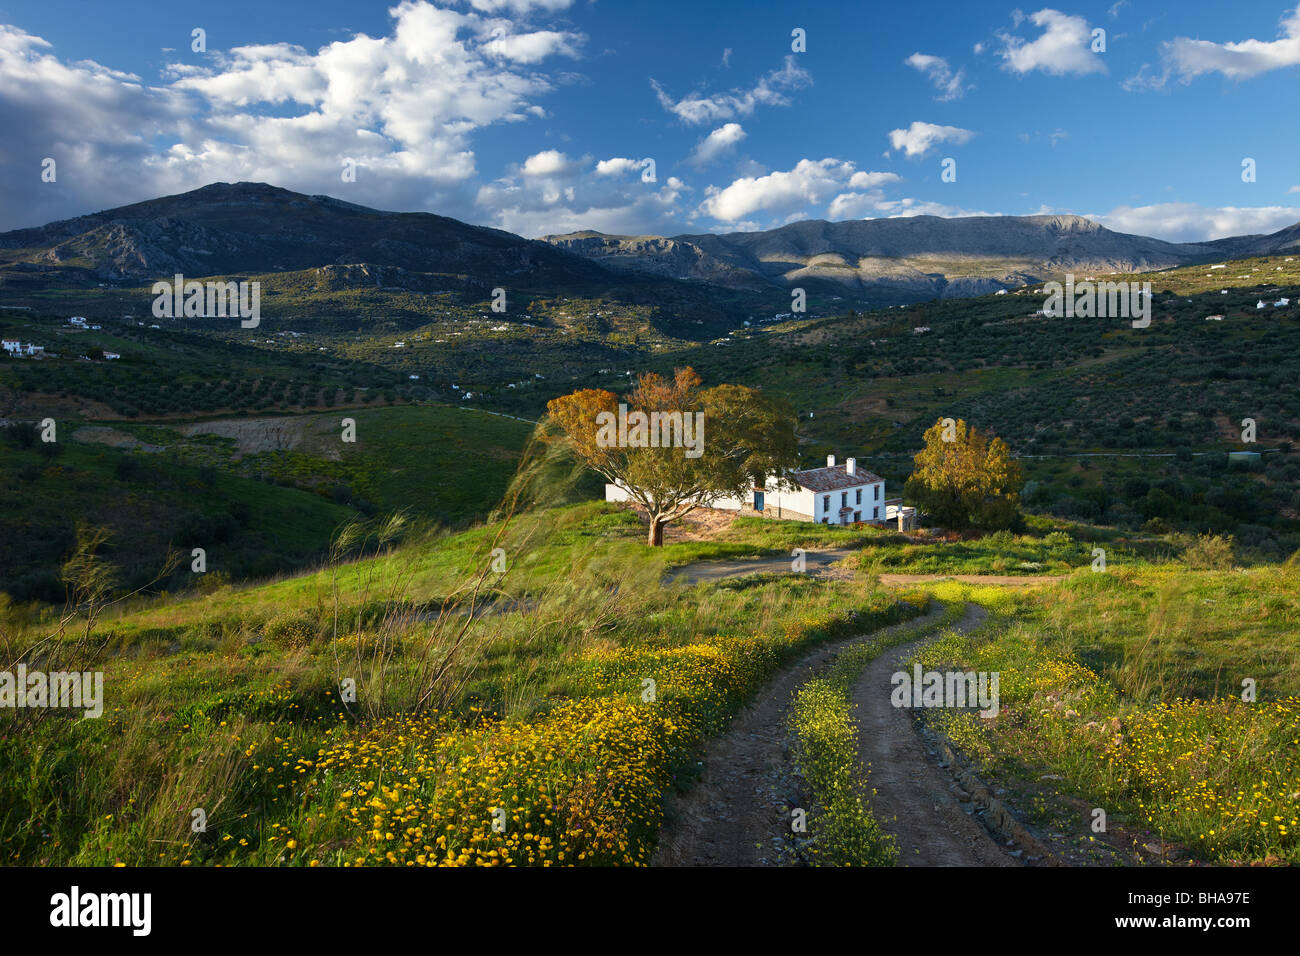 a house on the campo nr Los Molinos, Periana, Andalucia, Spain - Stock Image